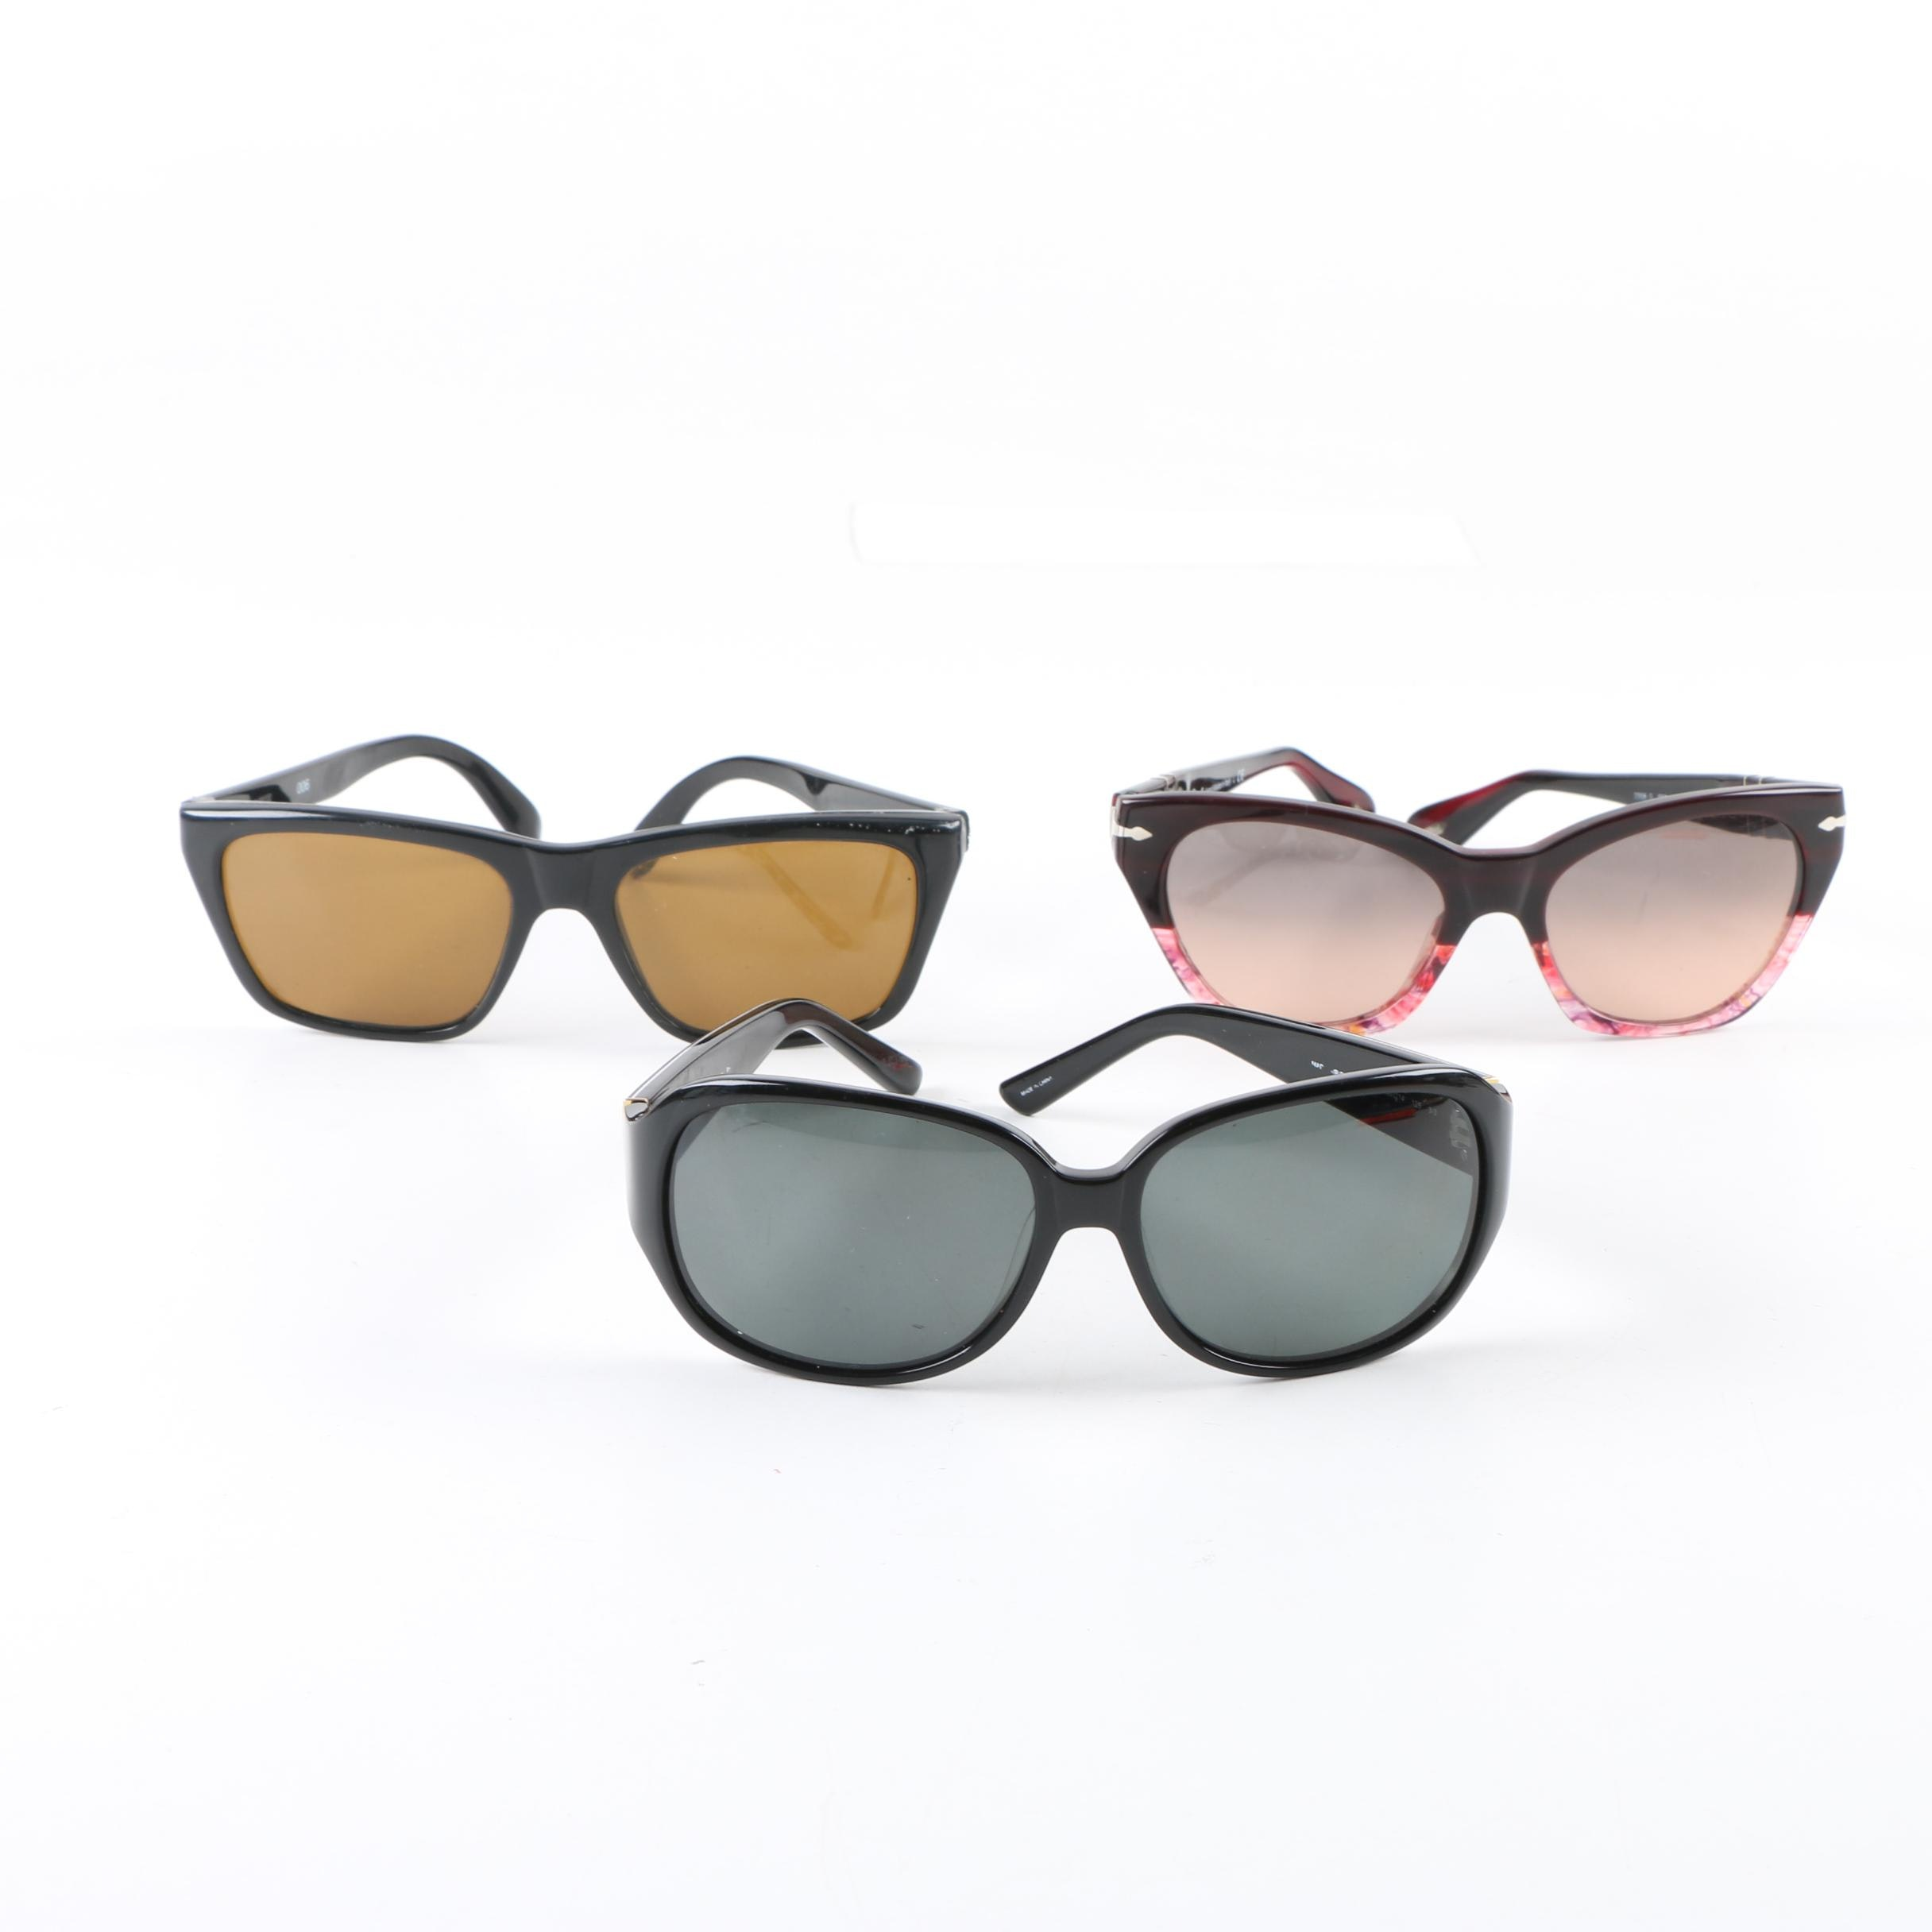 Women's Kate Spade New York, Persol and Vuarnet Sunglasses